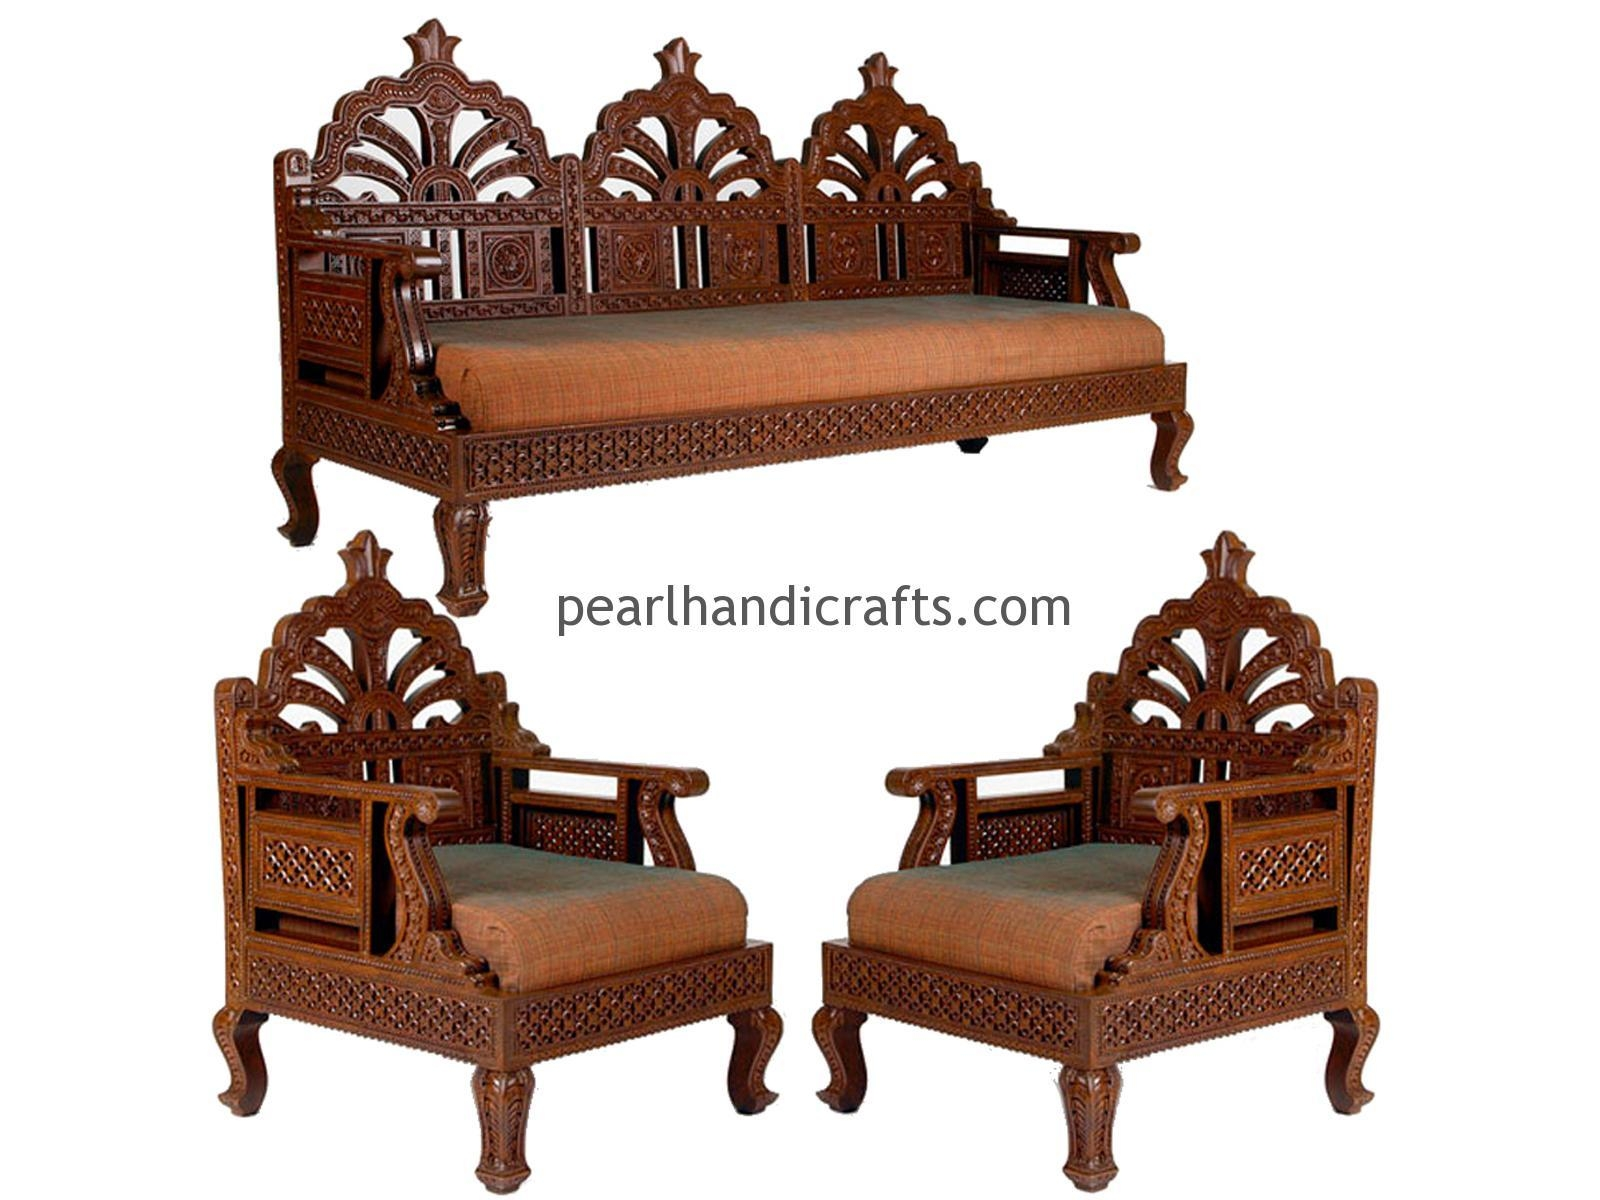 Carving, Circular, Rajasthani,traditional Teak Wood Sofa Set Pertaining To Carved Wood Sofas (Image 6 of 20)